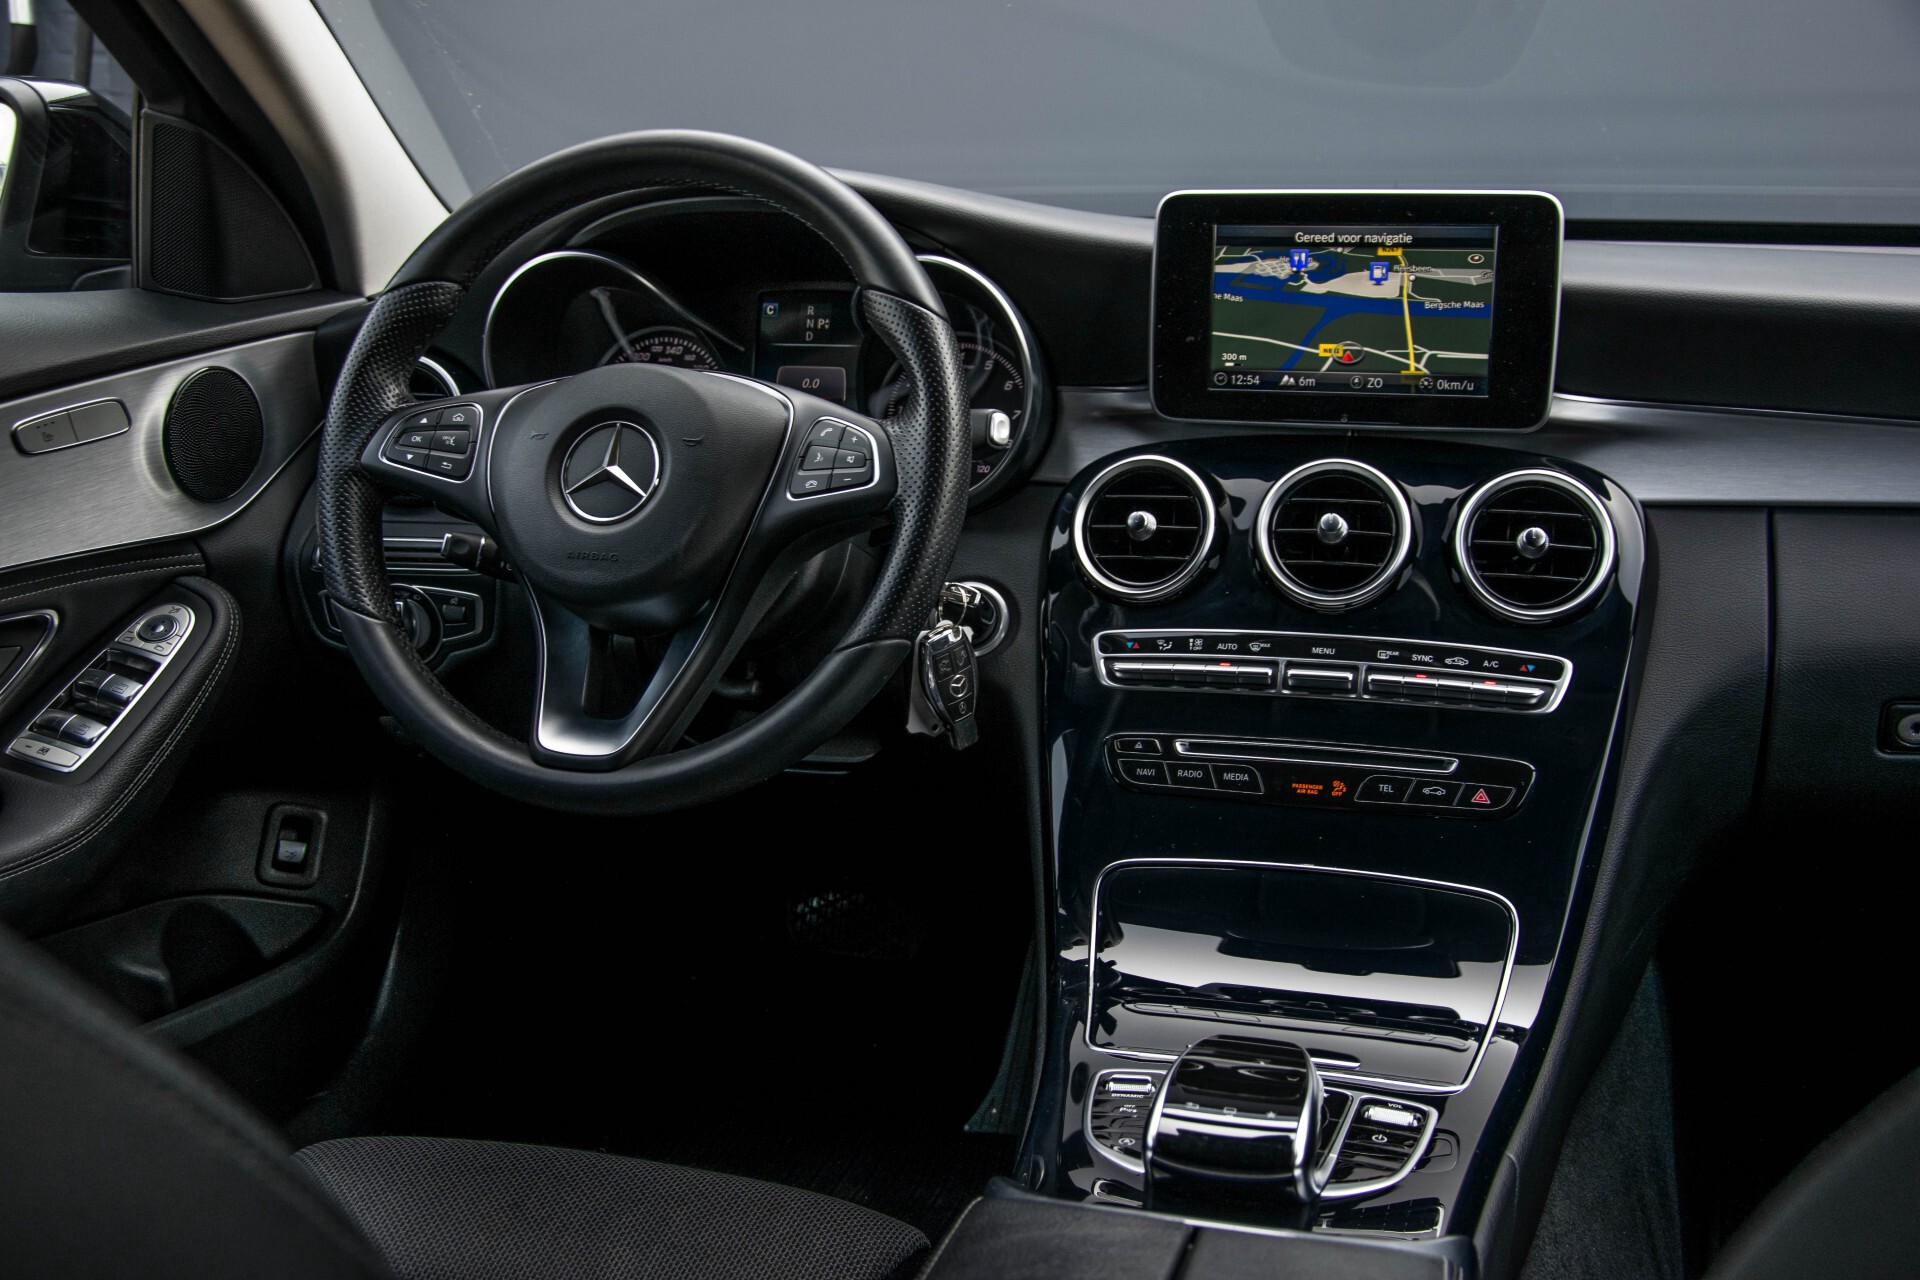 Mercedes-Benz C-Klasse Estate 180 Avantgarde LED/Navi/Privacyglas/Pts/Aut-koffer Aut7 Foto 6